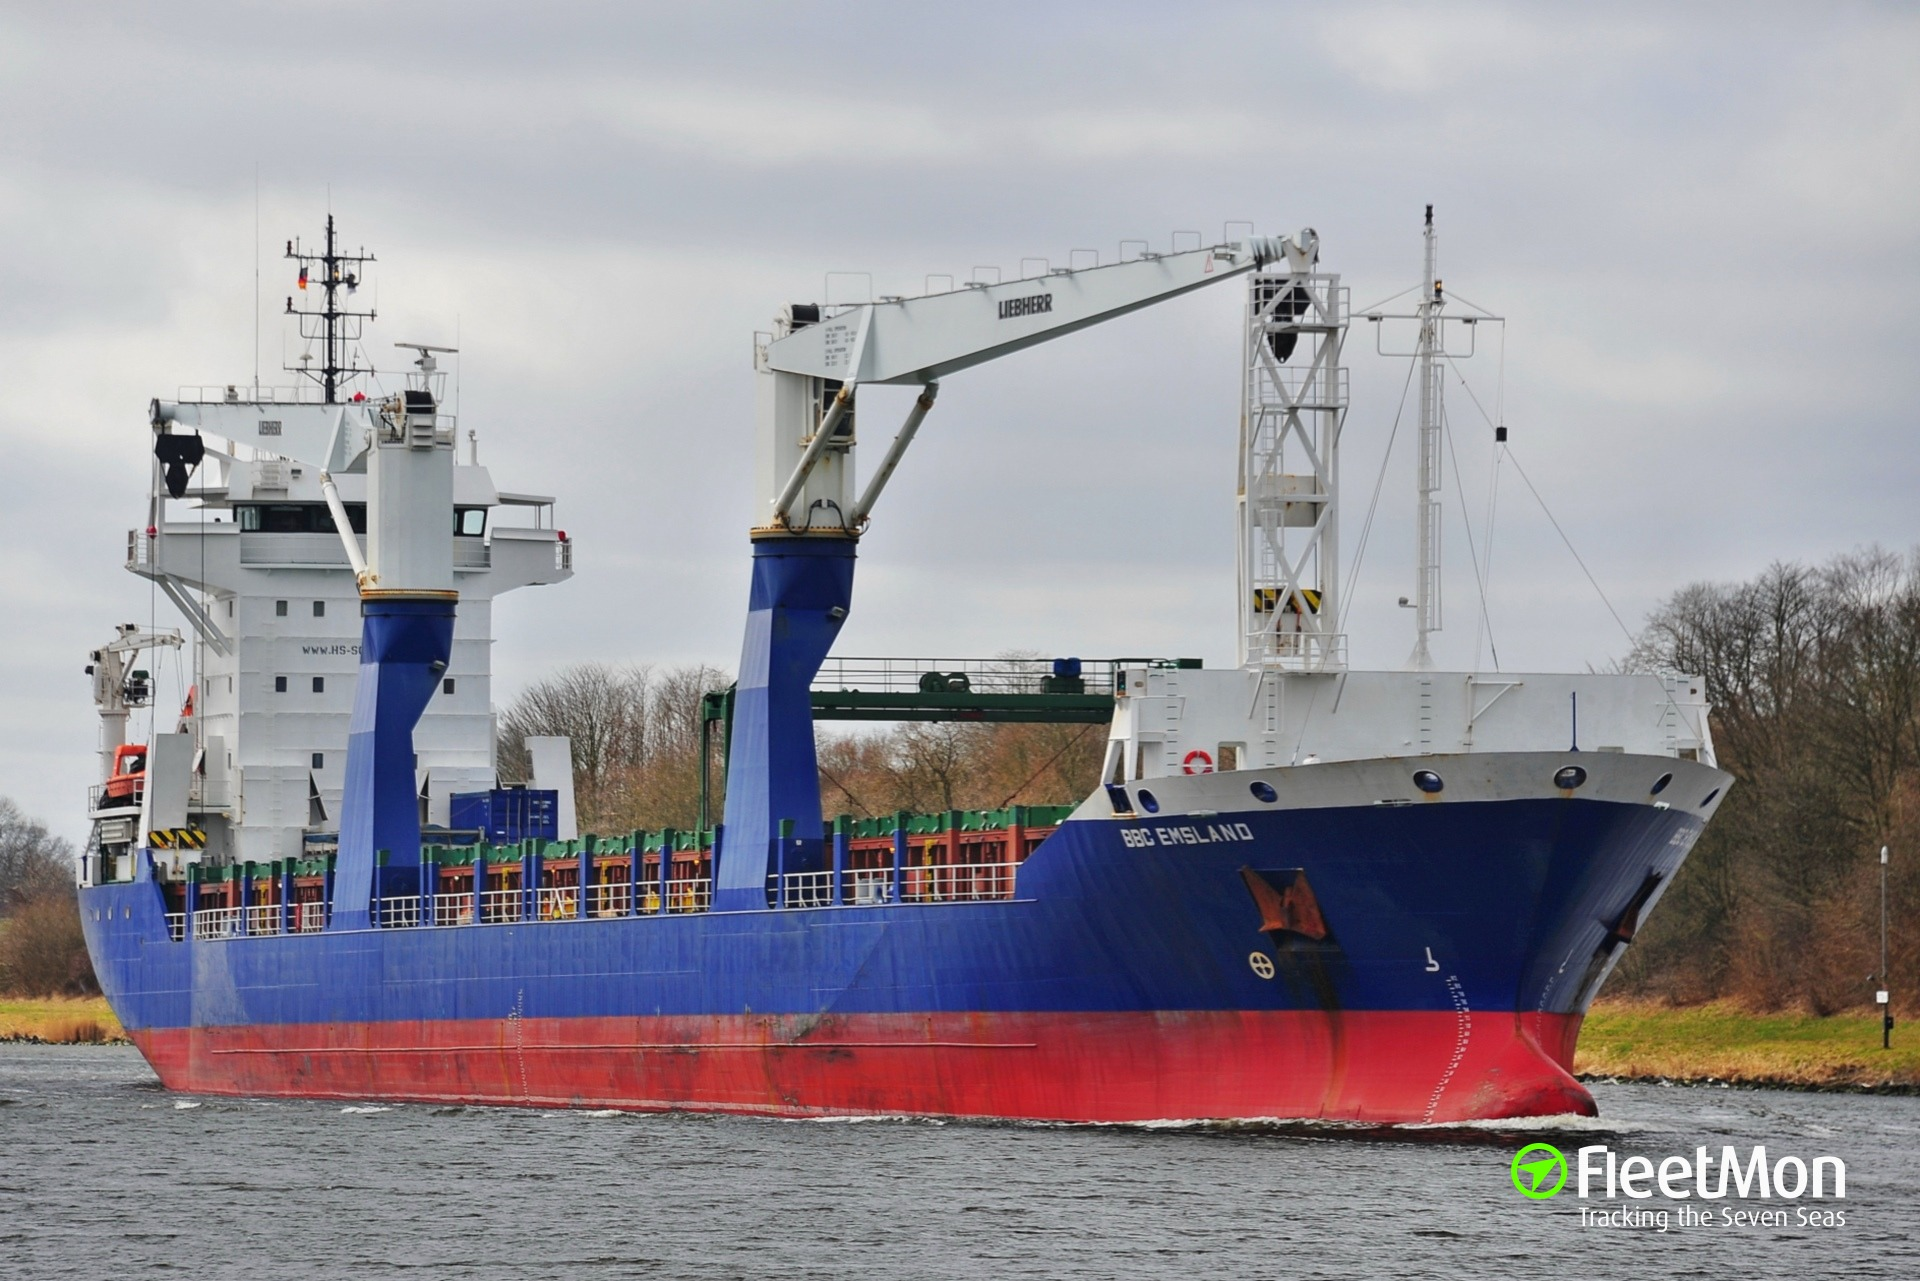 Fire in cargo hold of freighter Emsland, Norway